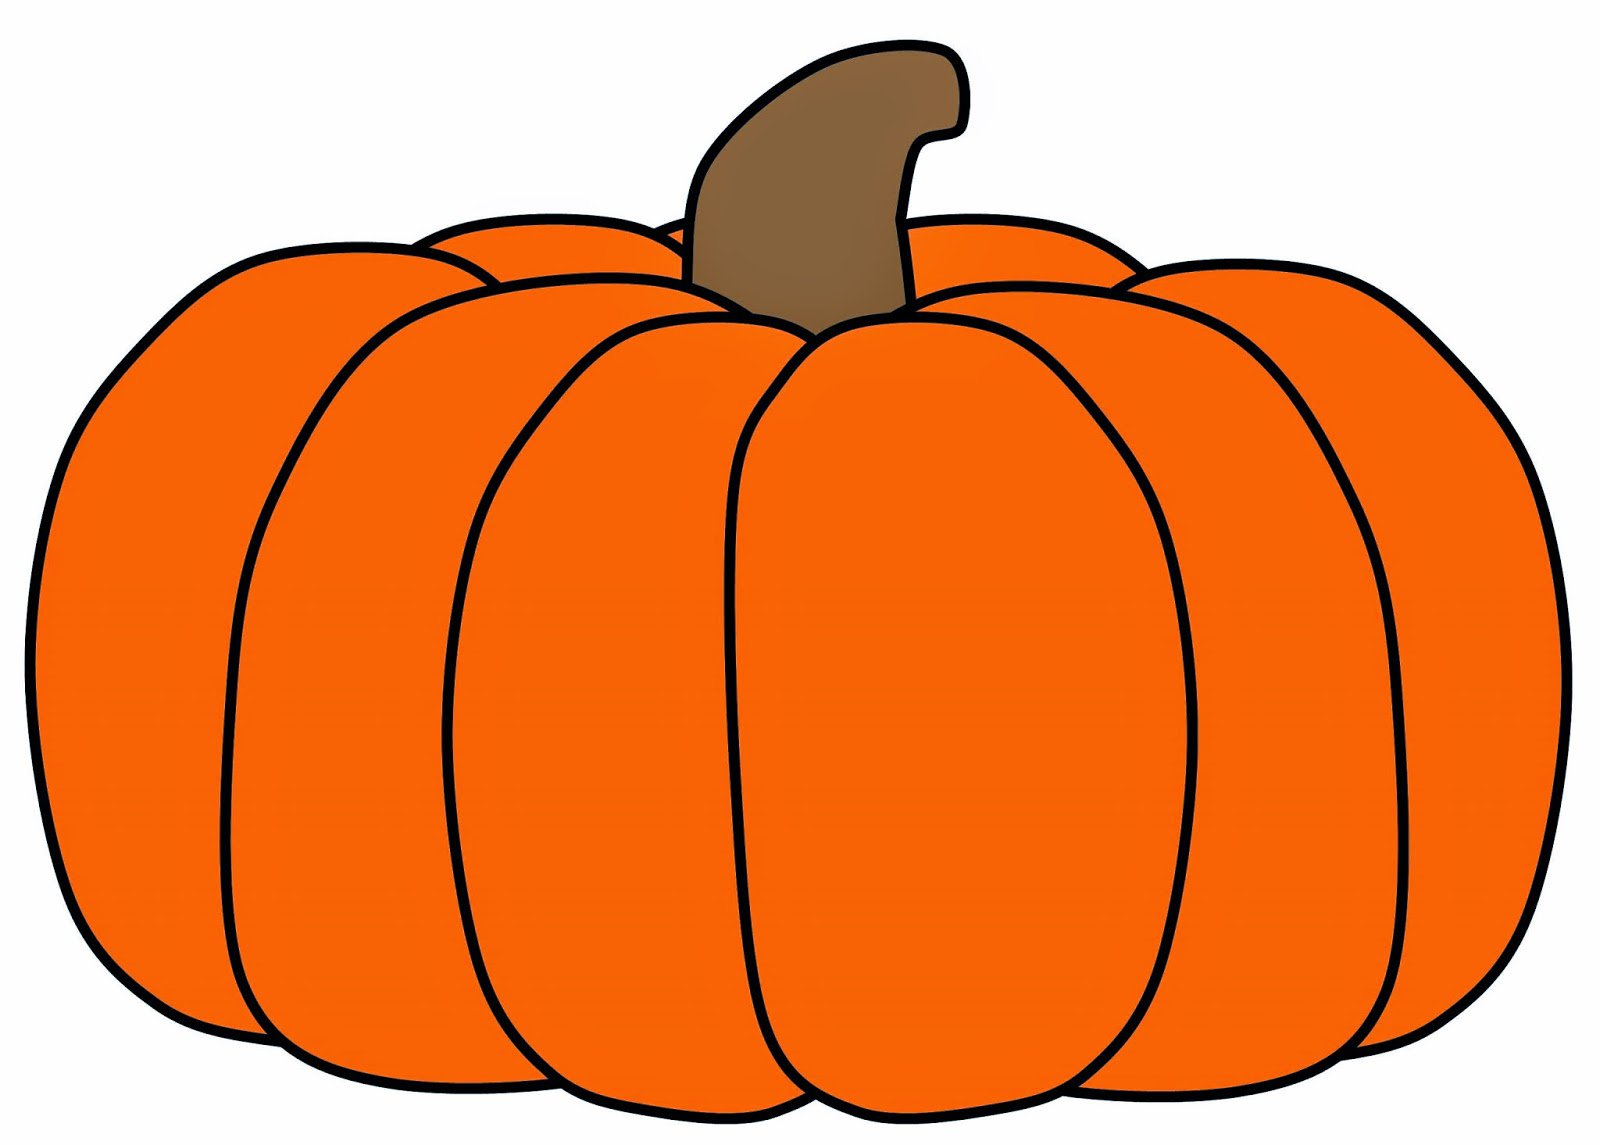 Lmn Tree  It's Pumpkin Time  Free Resources, Books, Crafts, And